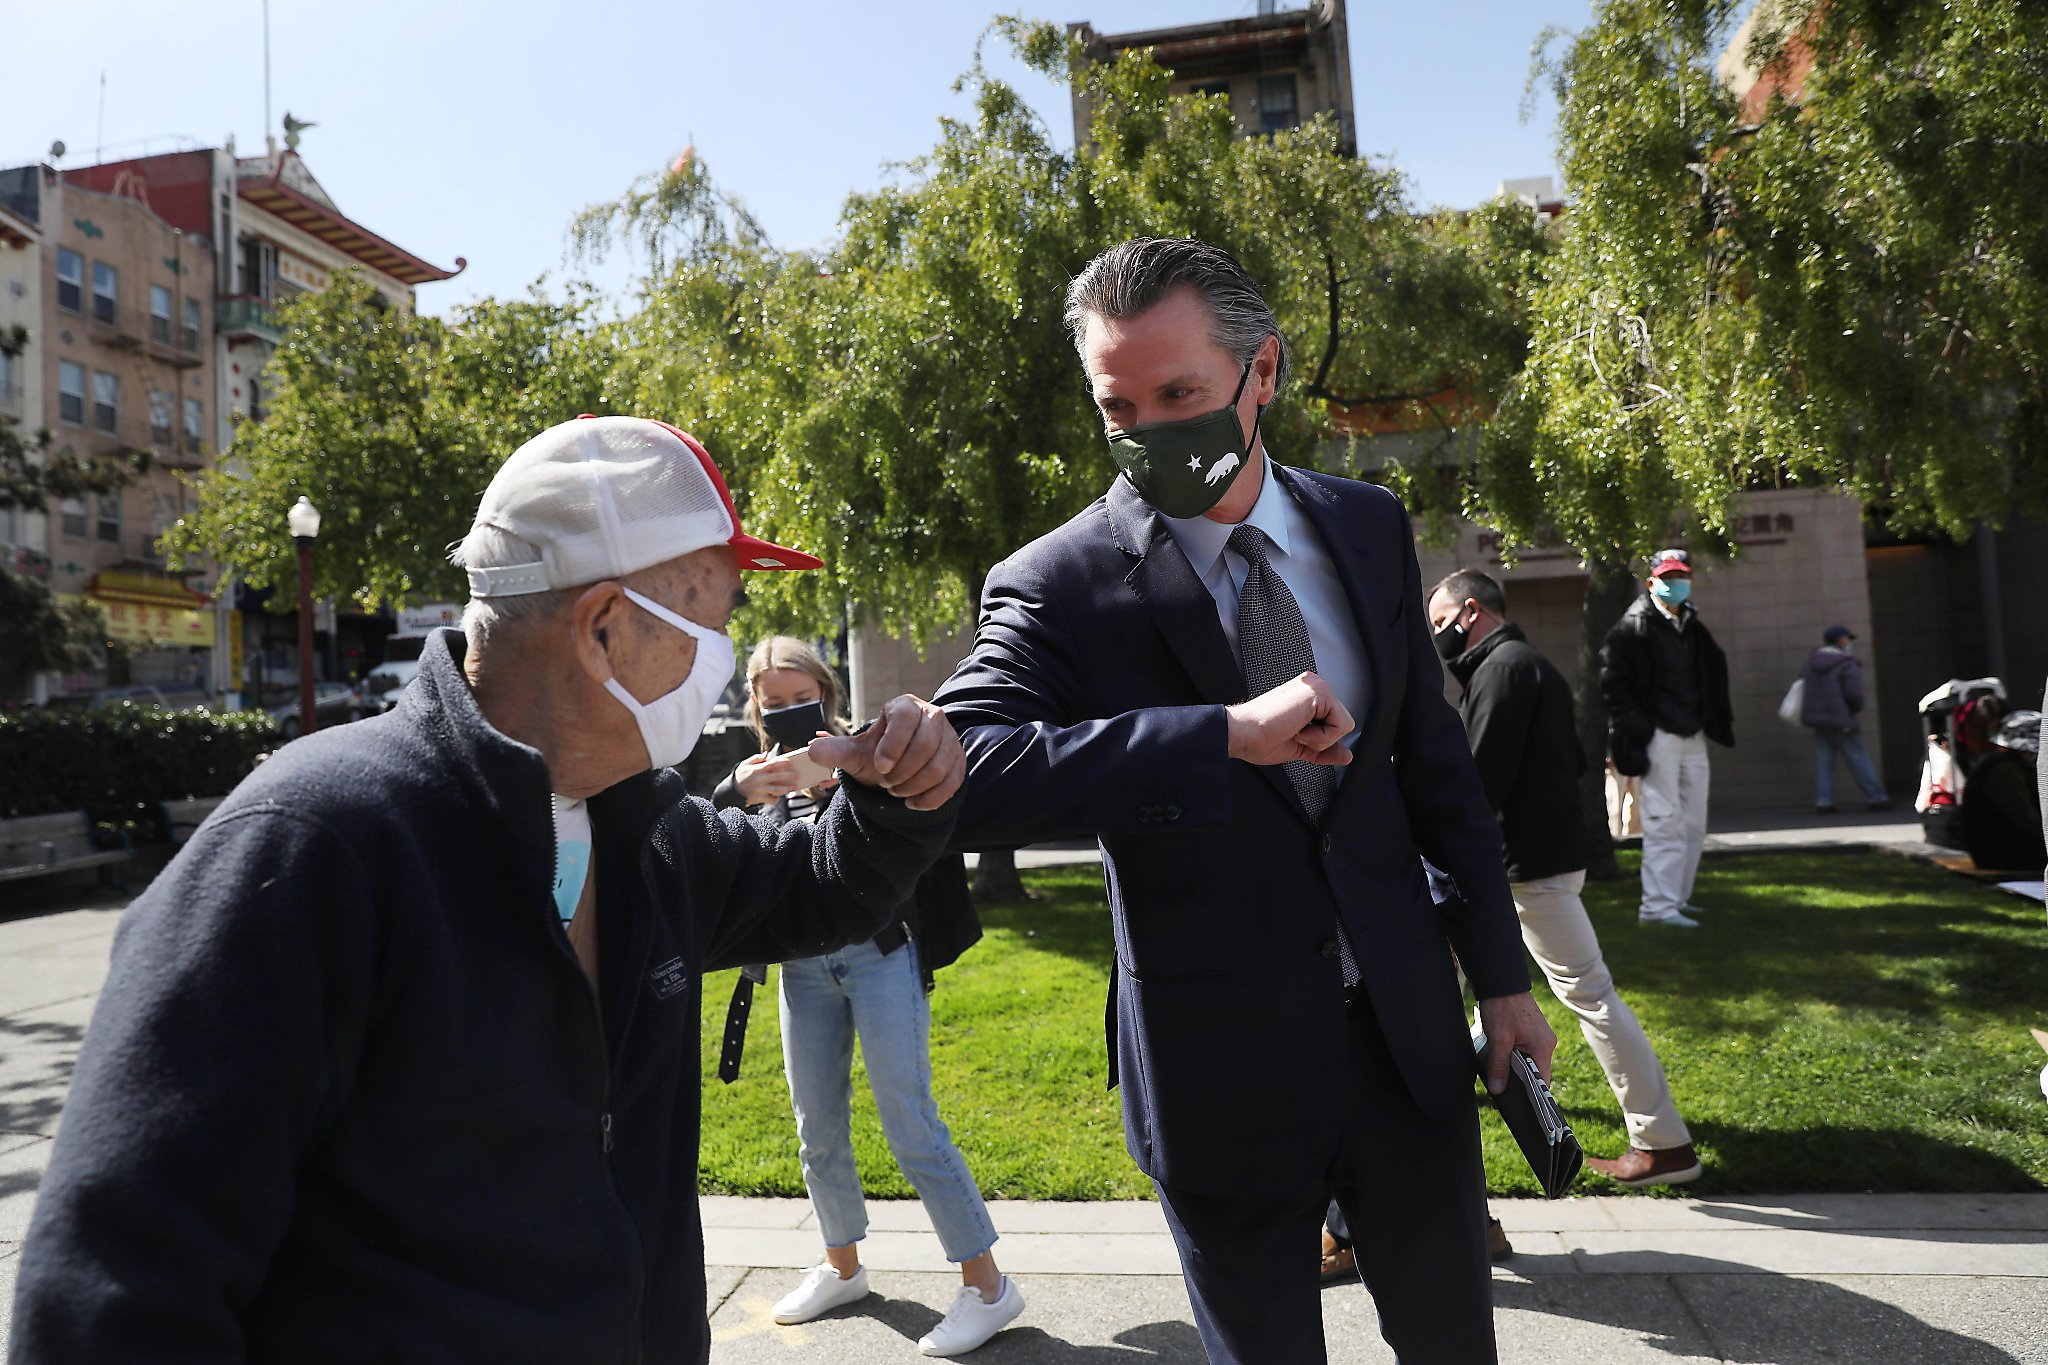 www.sfchronicle.com: Newsom on attacks against Asian Americans: 'The hell is wrong with us?'